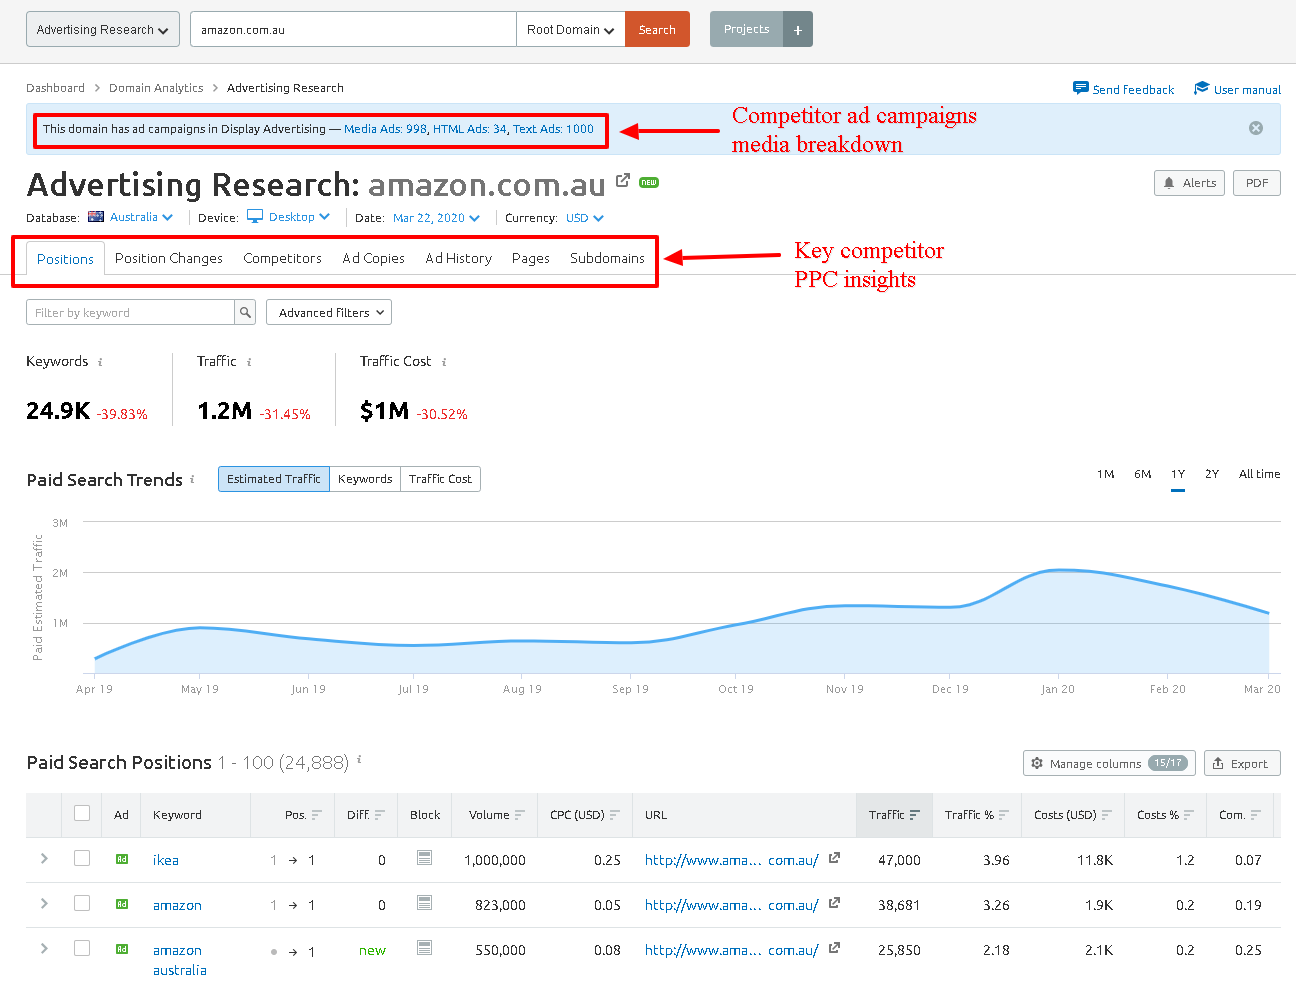 Competitor Advertising Research Amazon SEMrush